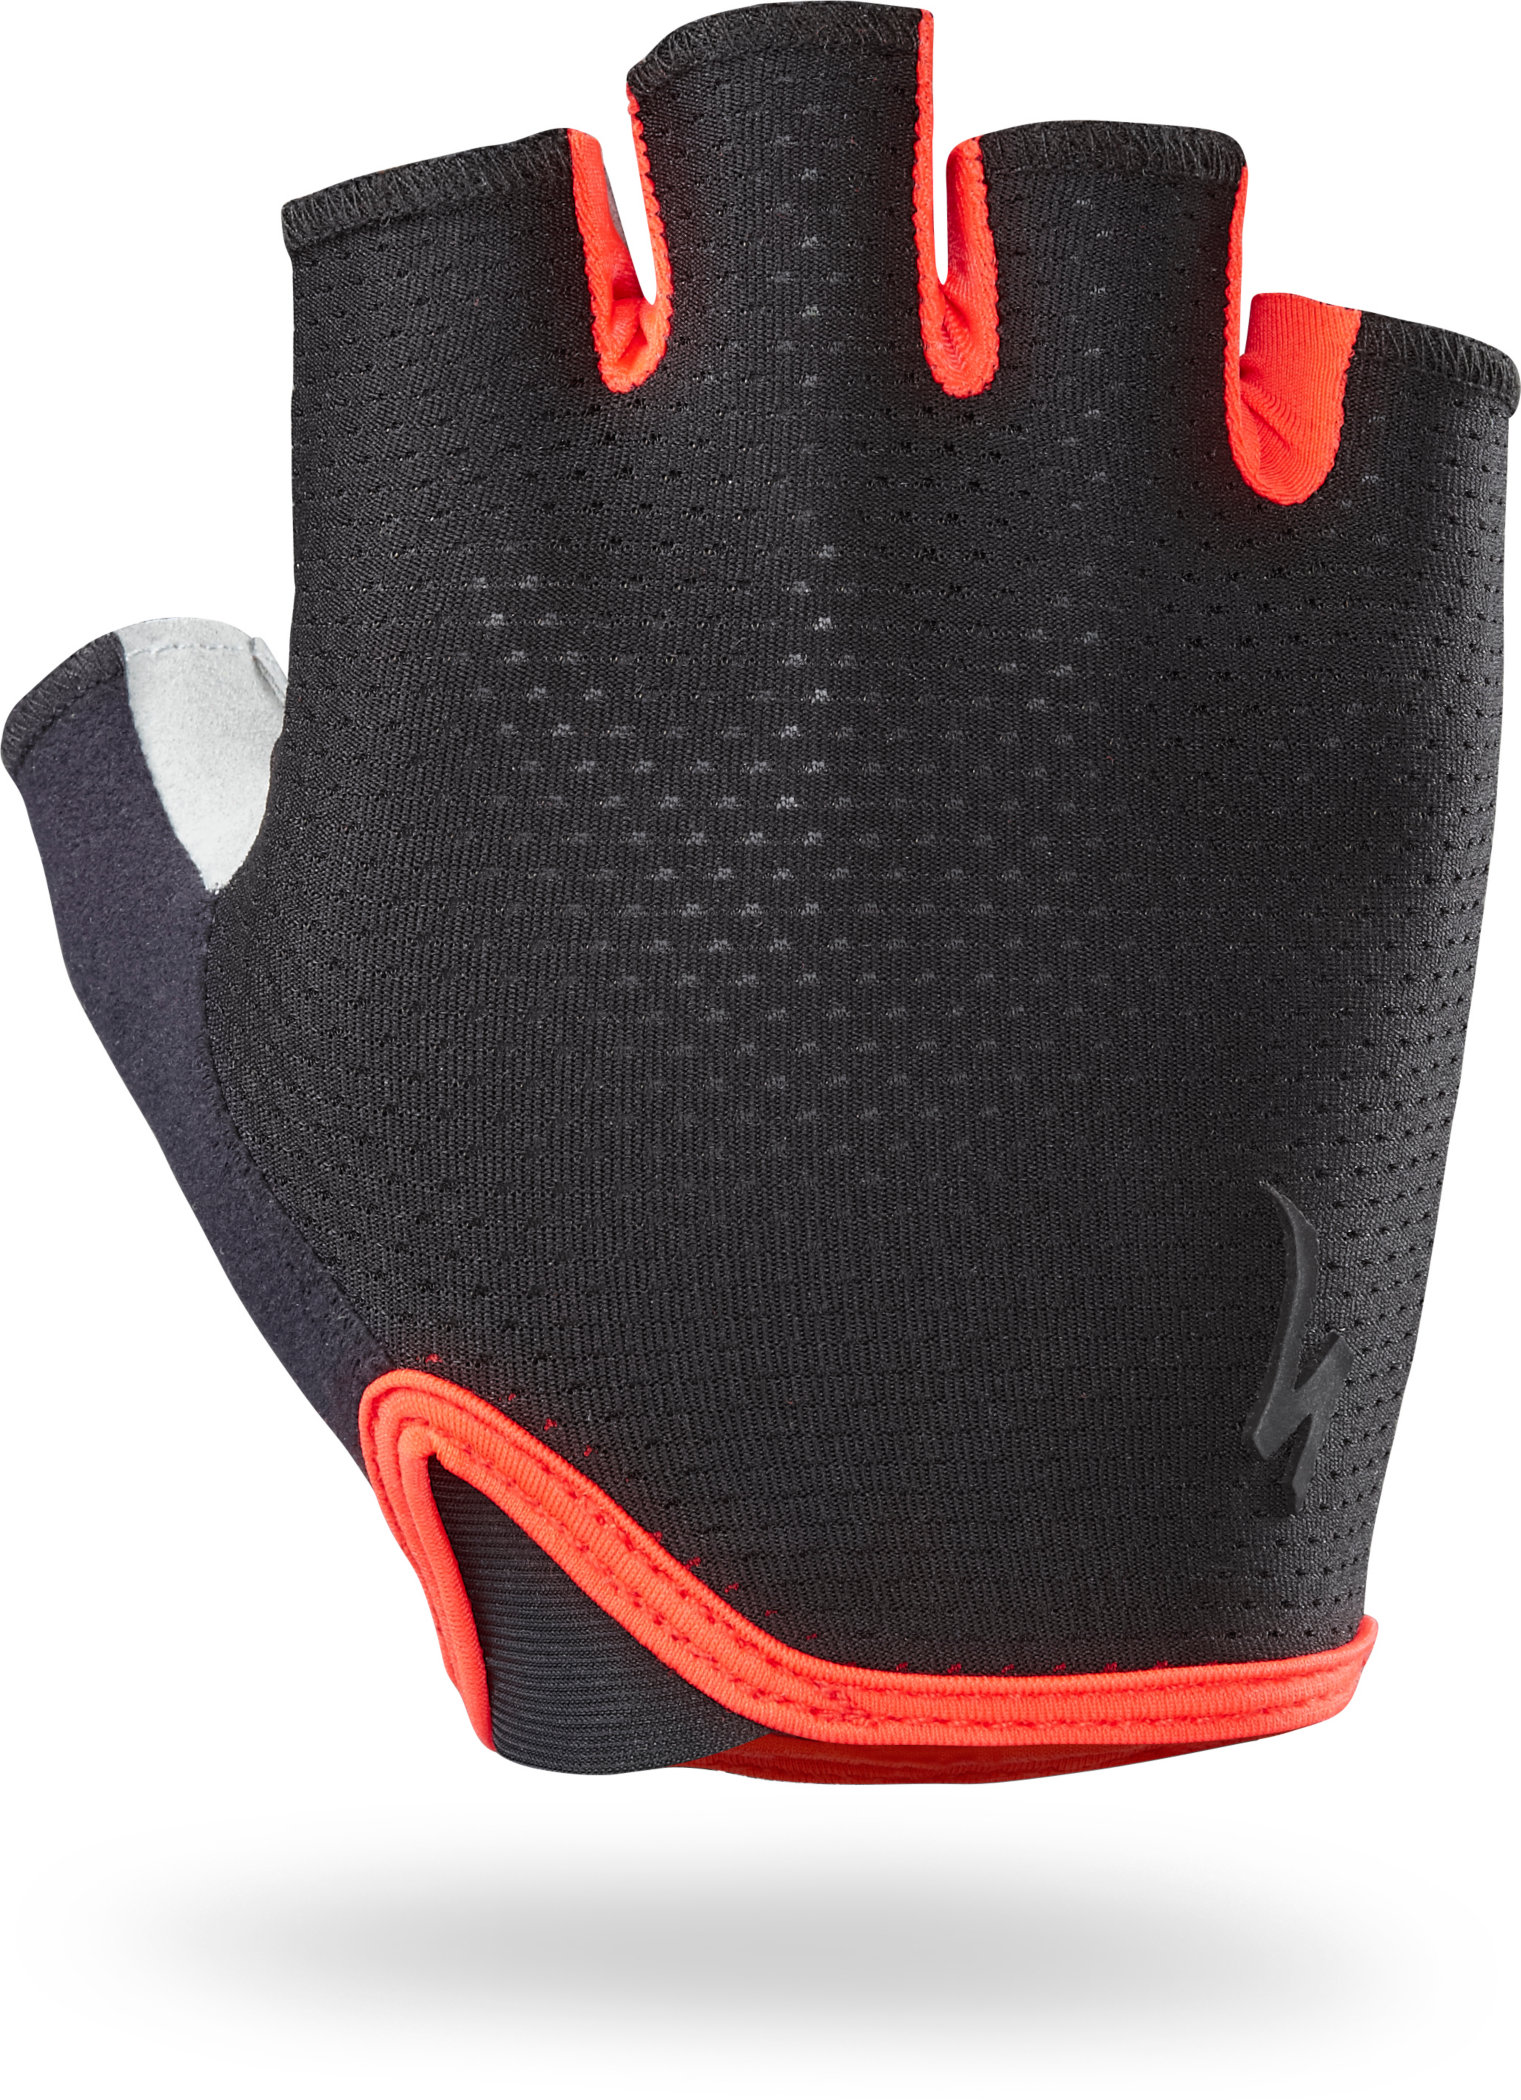 SPECIALIZED BG GRAIL GLOVE SF BLK/RKTRED L - Bikedreams & Dustbikes